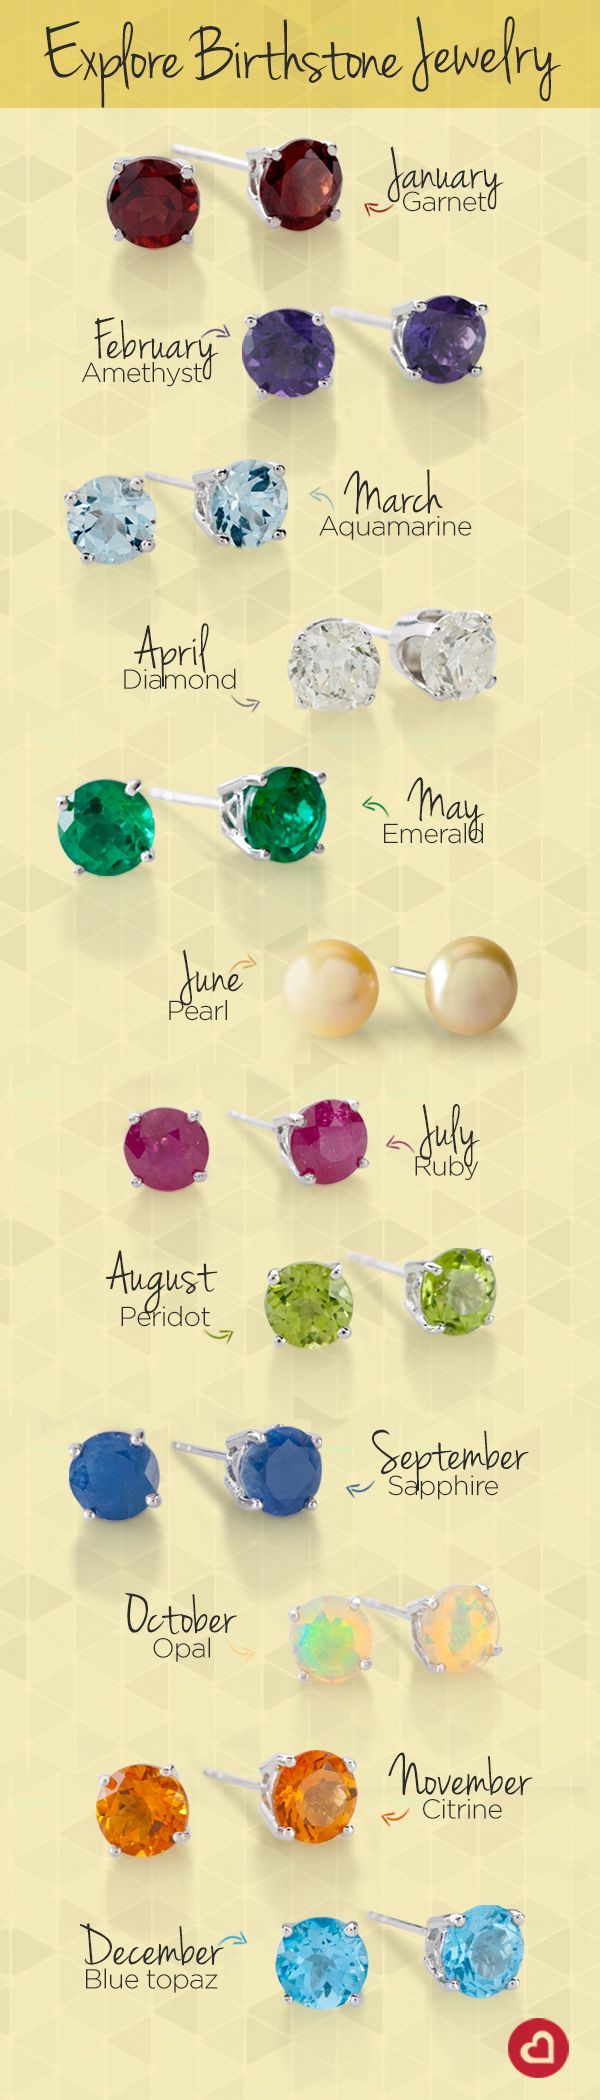 Birthstone jewelry is back and an important part of a well-rounded jewelry collection. Not only beautiful, birthstone jewelry is meaningful and significant too! Birthstones have existed for many cultures with their own calendars throughout history. Today, most recognize the birthstone list made official by Jewelers of America in 1912. Birthstone jewelry is the perfect personalized gift for you or someone you love! Find popular birthstone jewelry styles for each month at affordable prices!